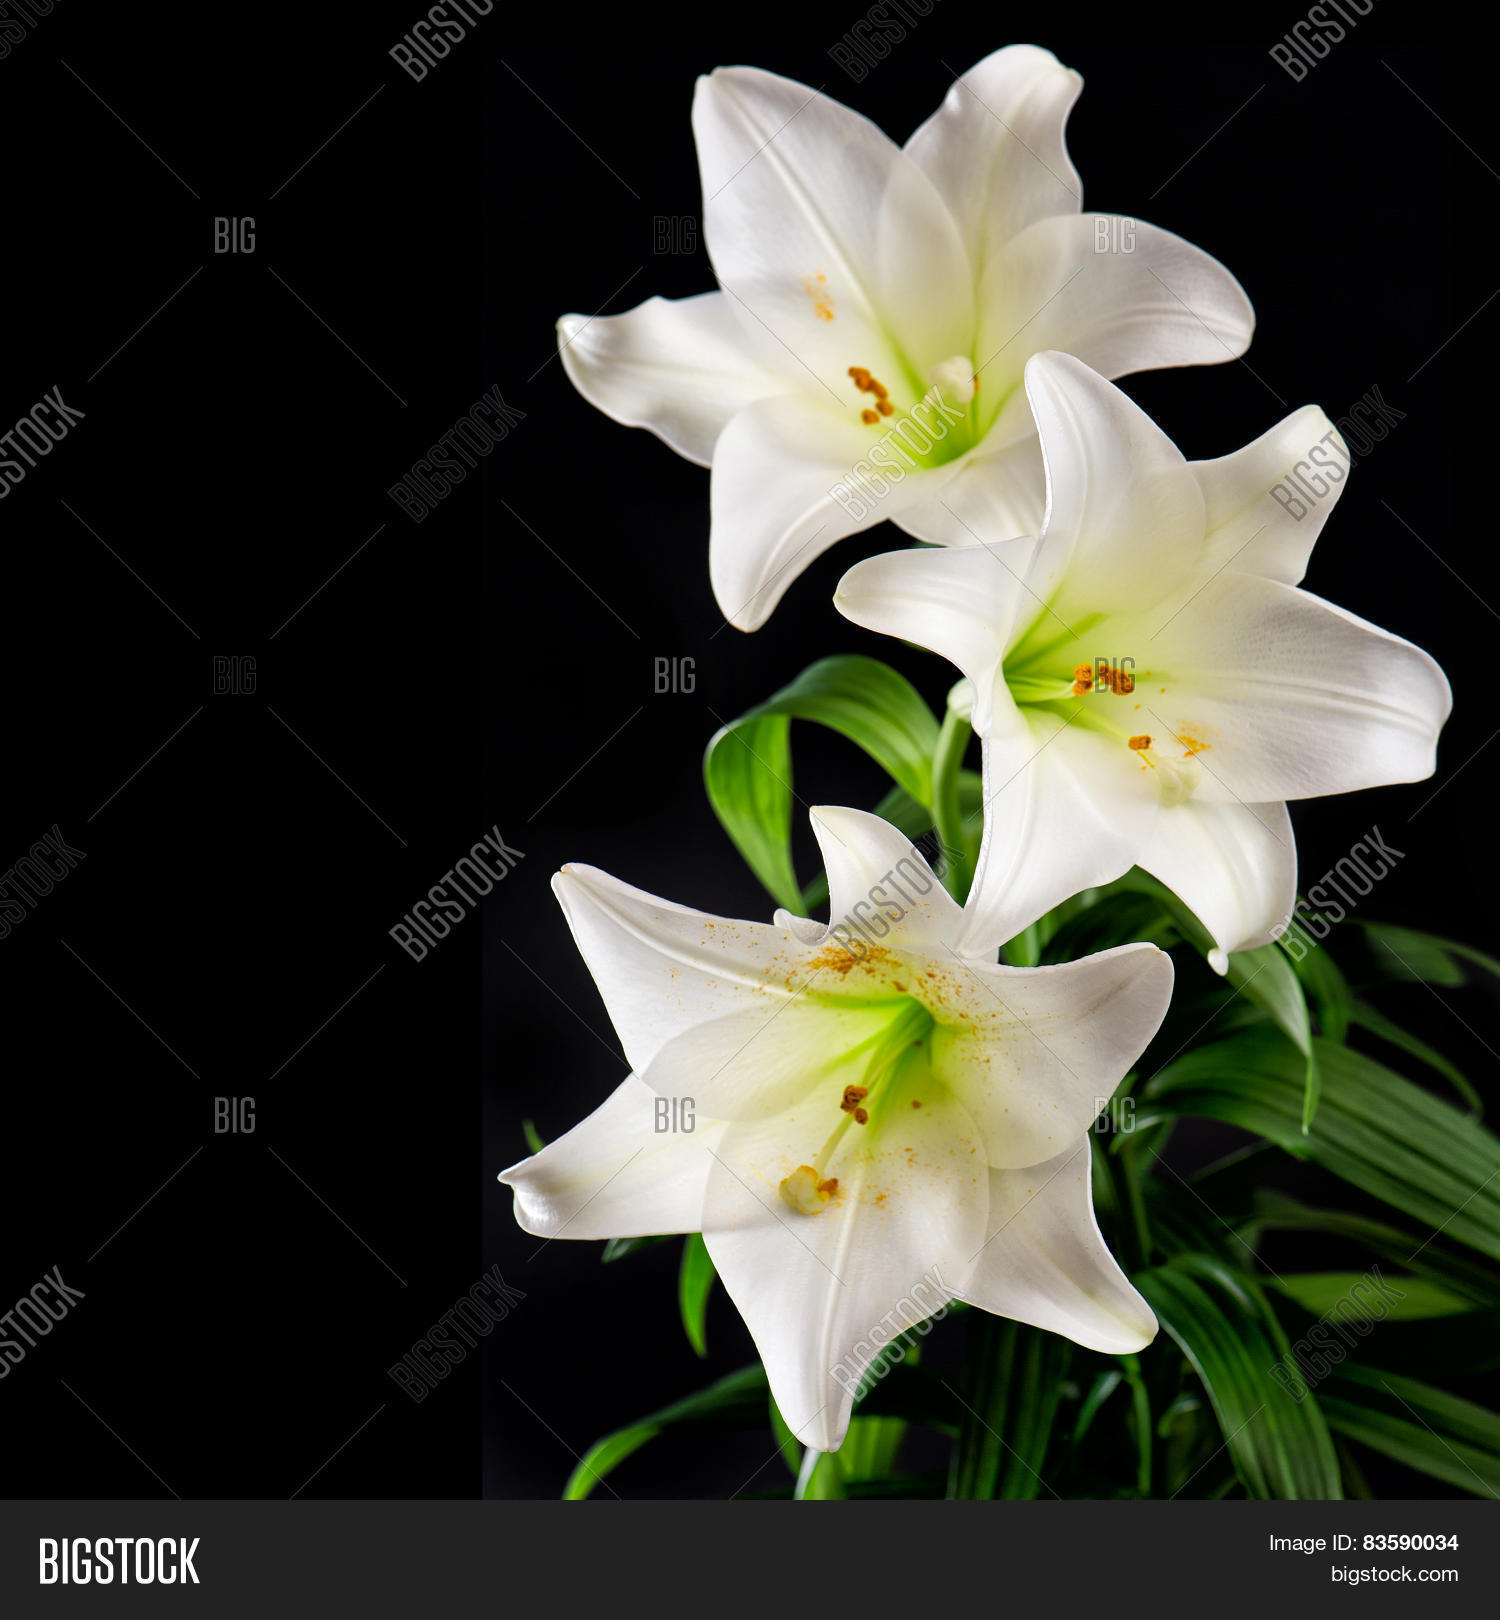 White Lily Flowers Image Photo Free Trial Bigstock